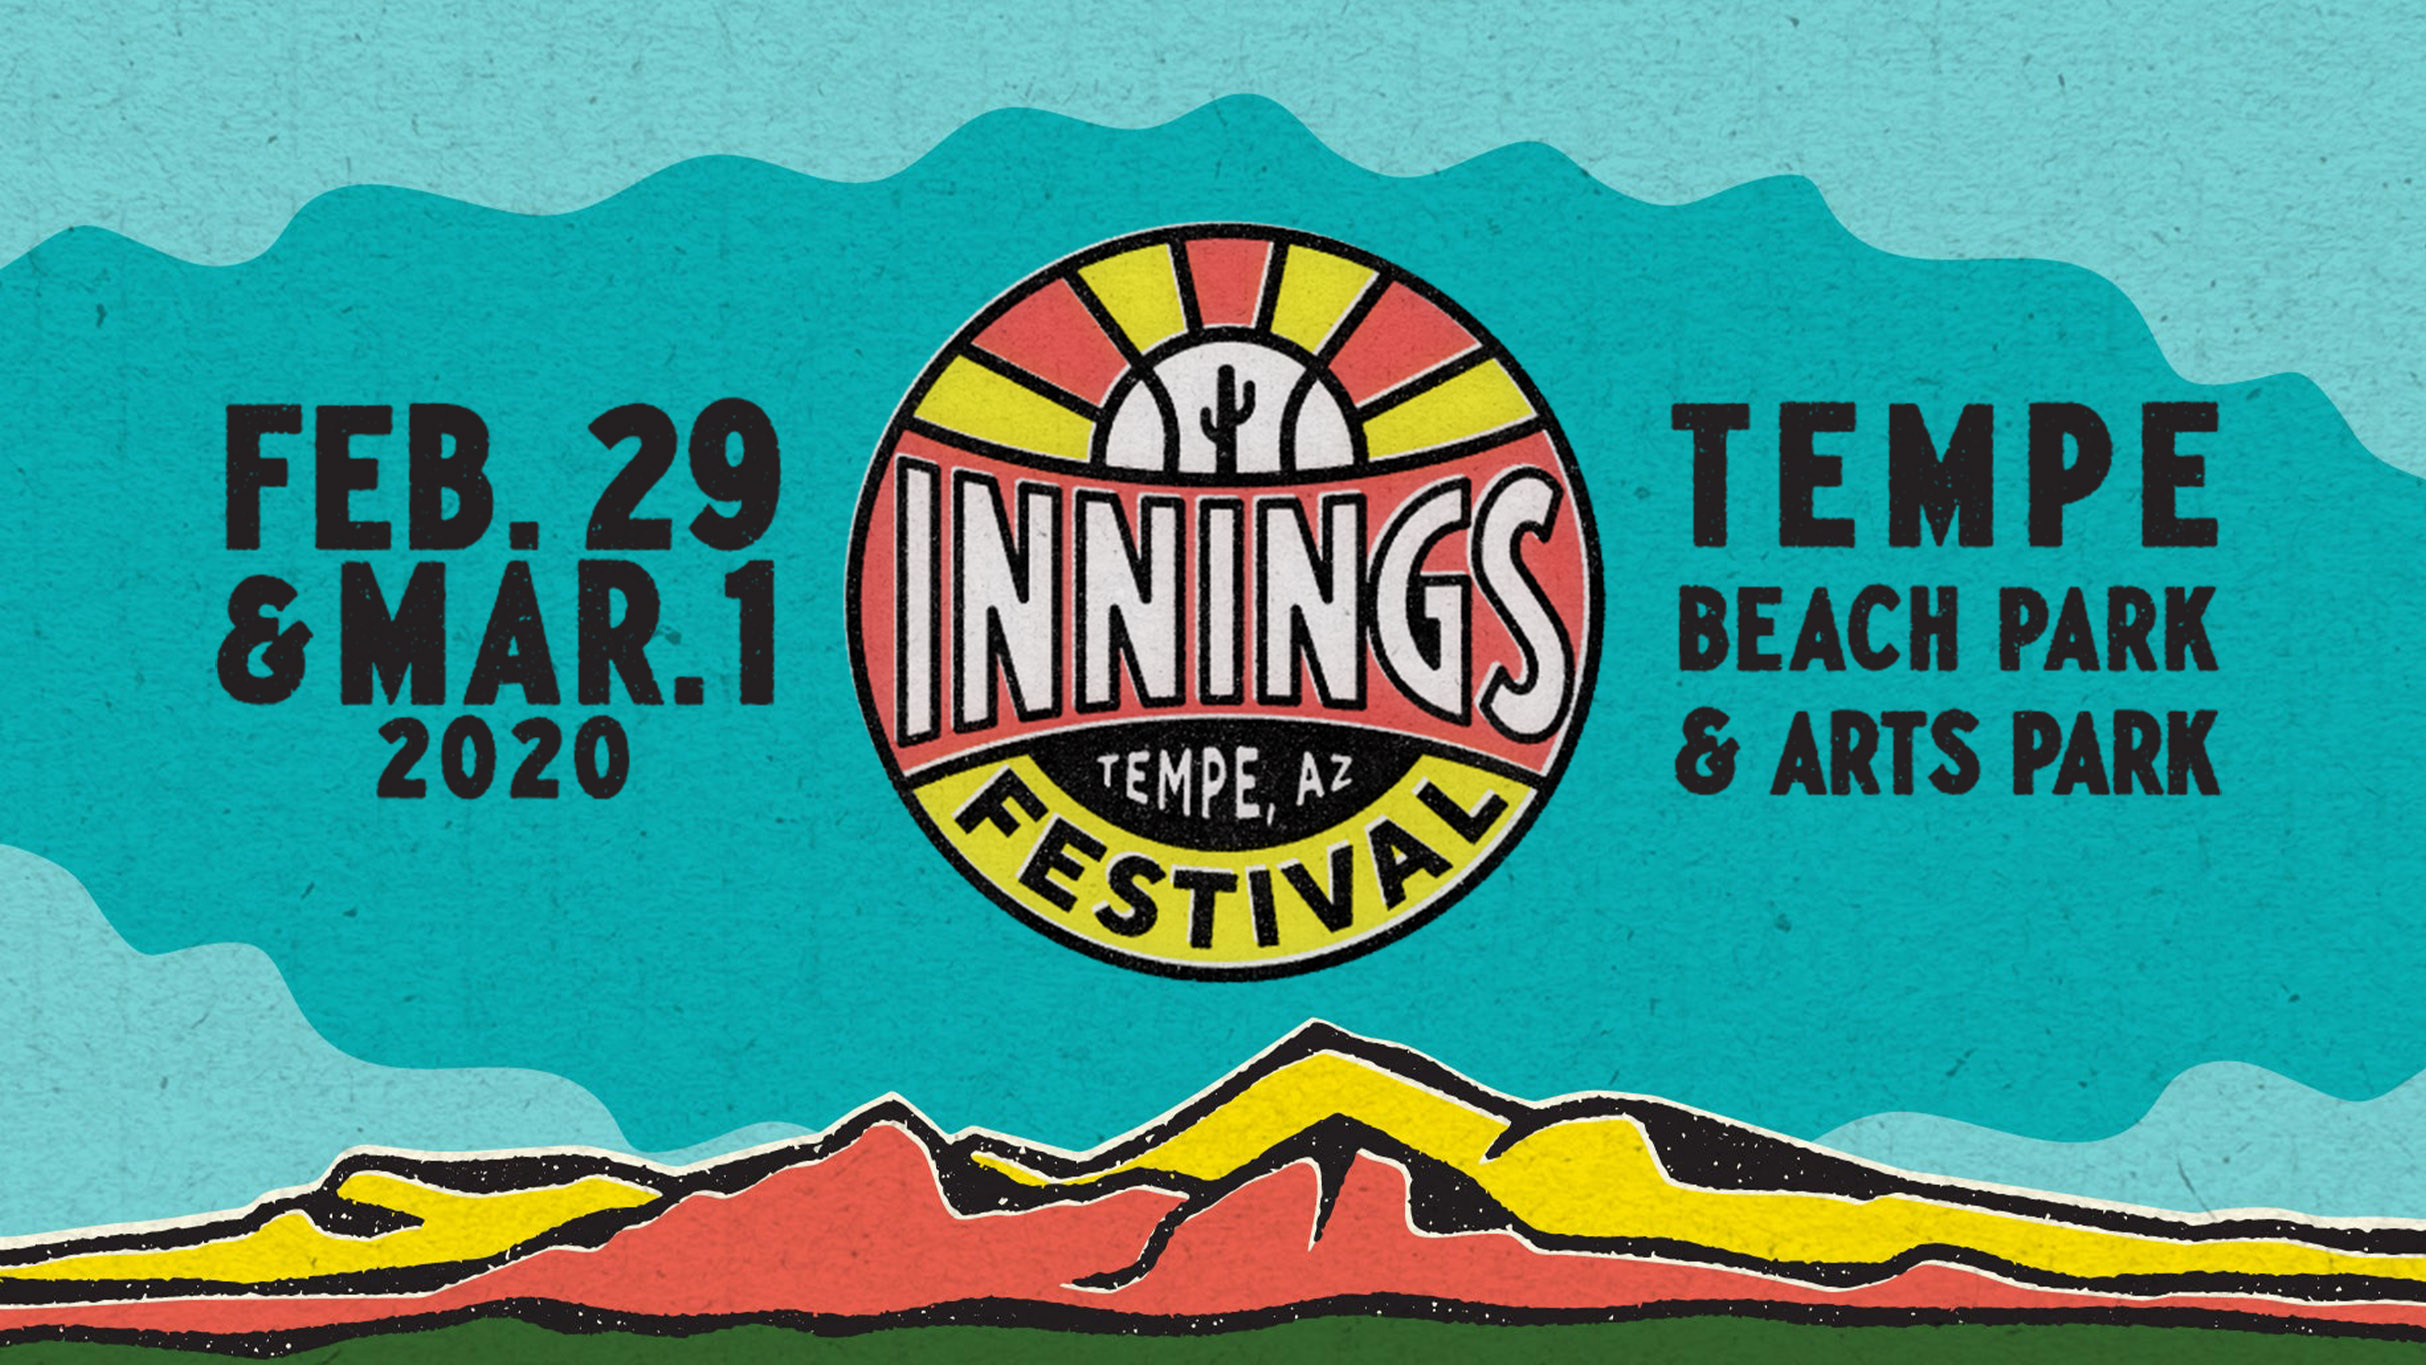 Innings Festival 2020 Knocks It Out of the Park